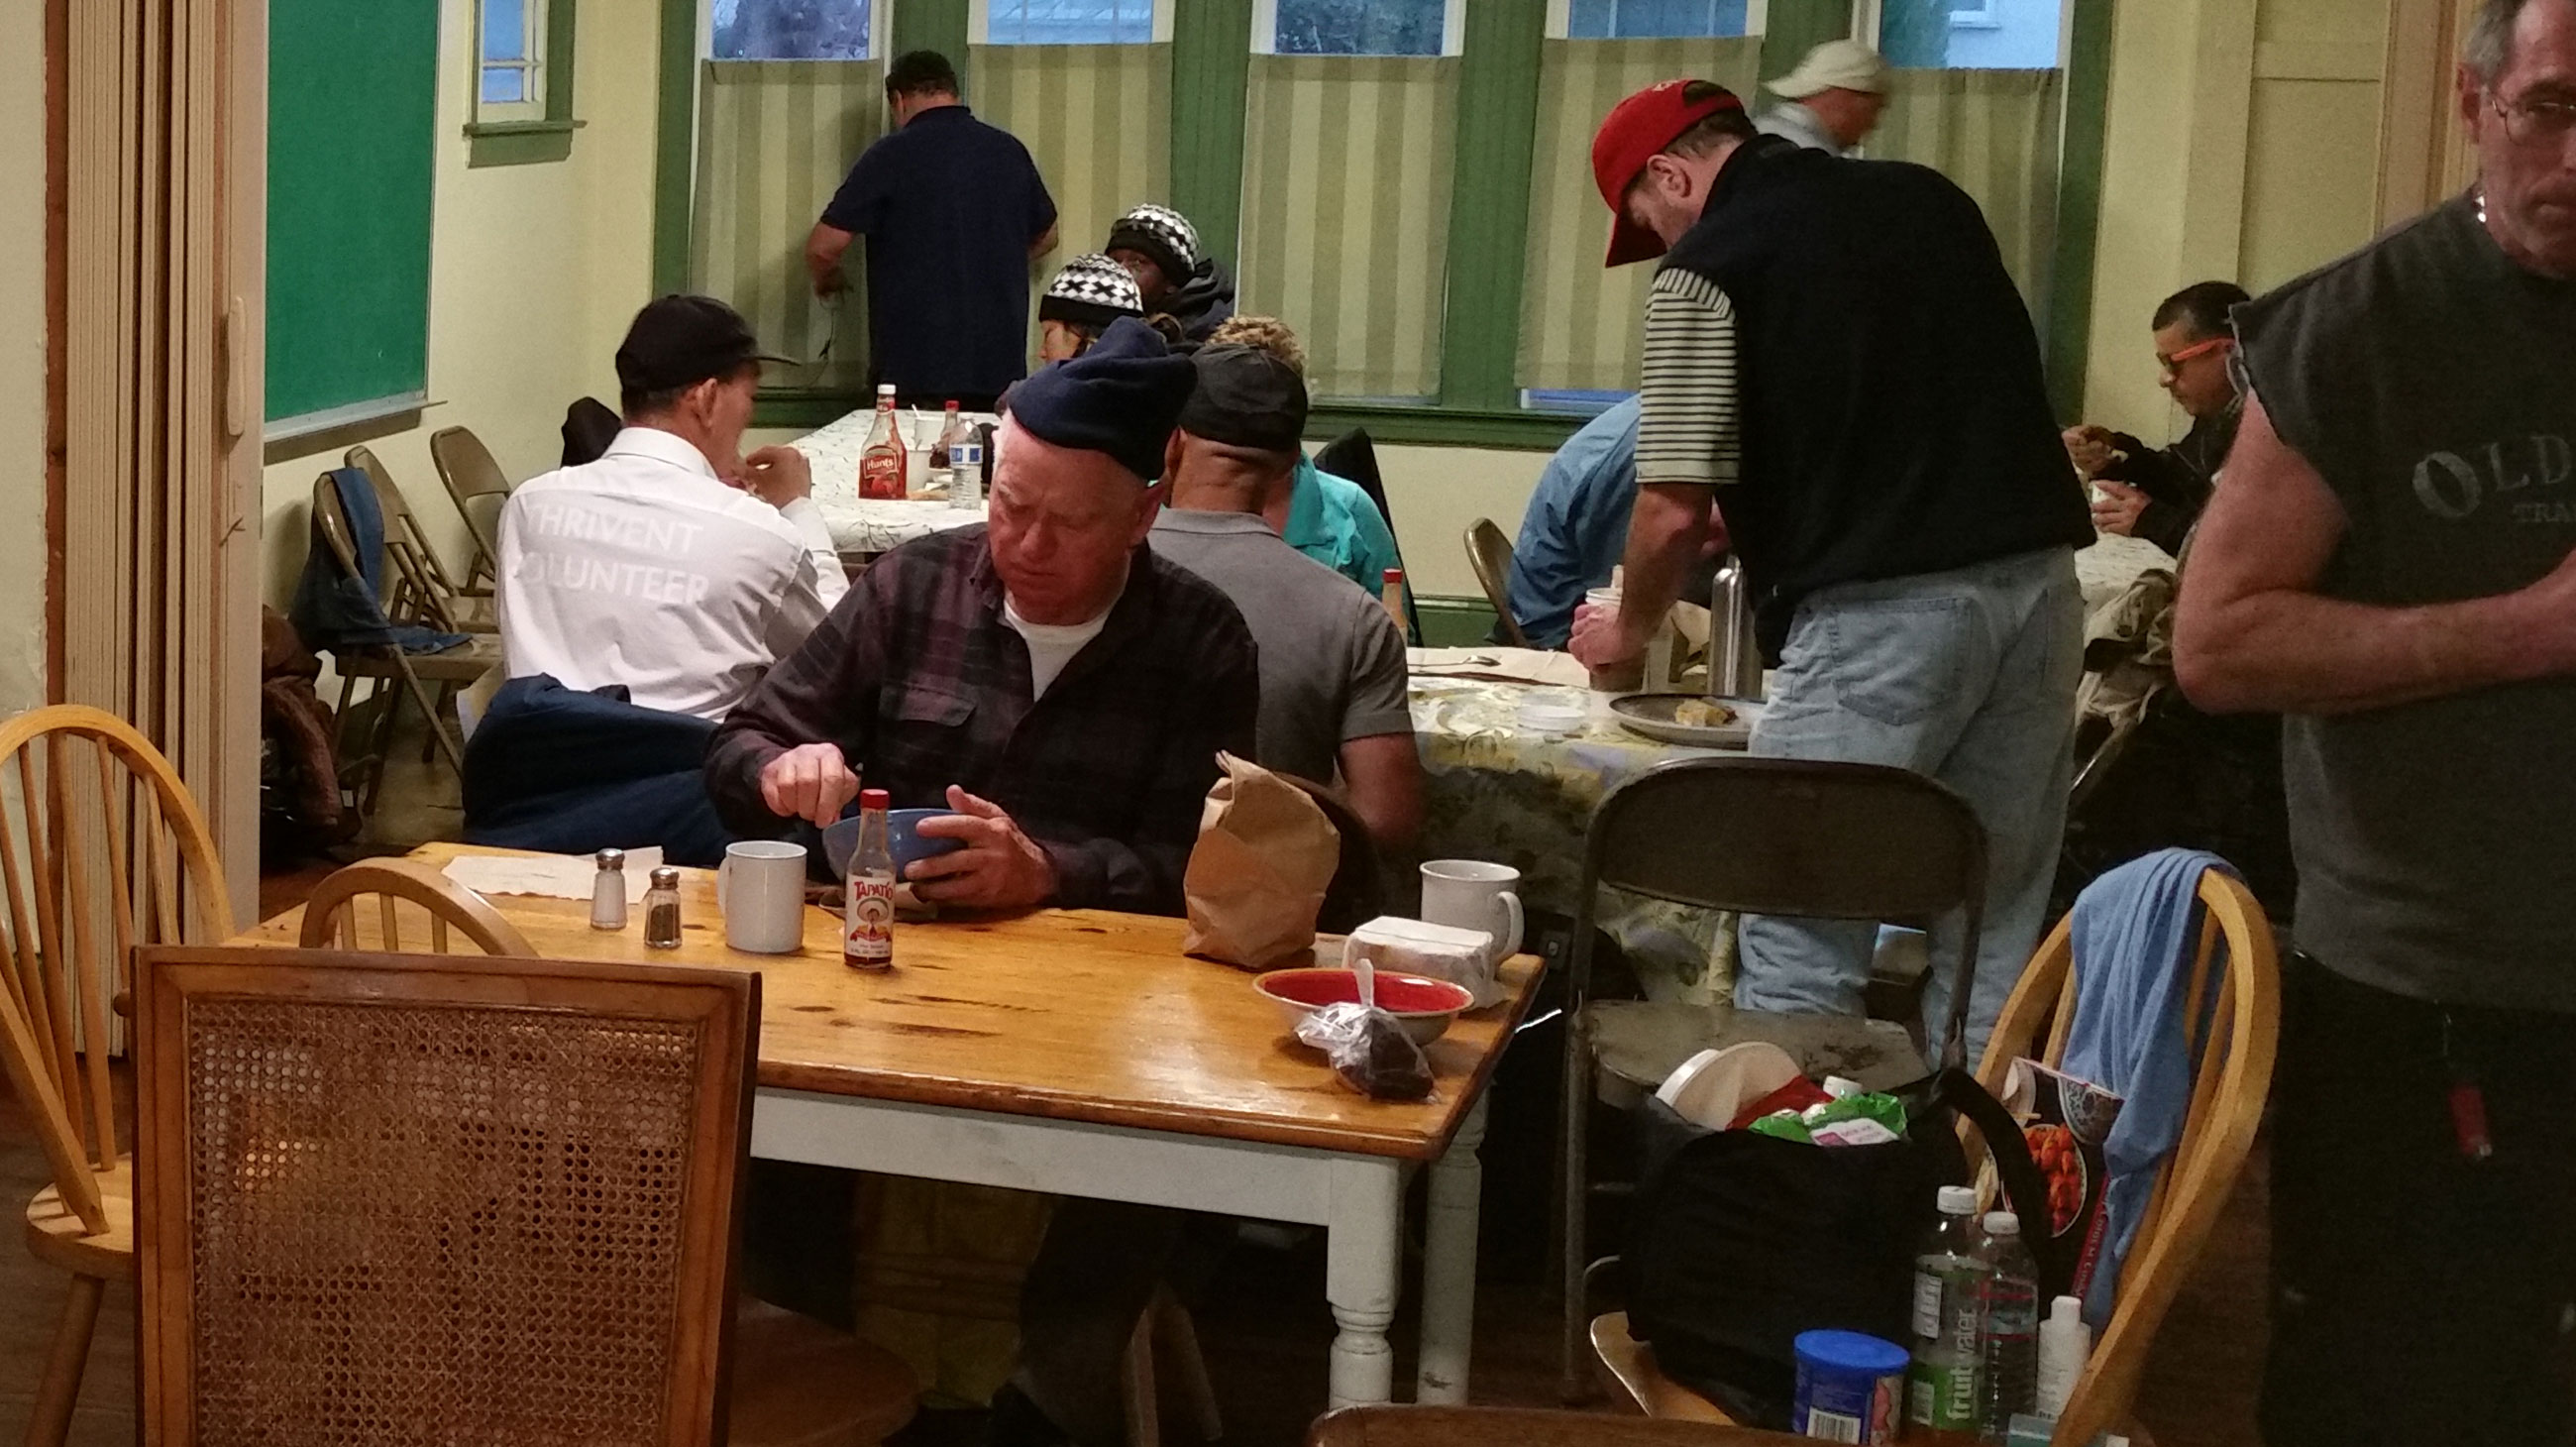 Catholic Worker Hospitality House of San Bruno - Providing meals and shelter in San Bruno, California.